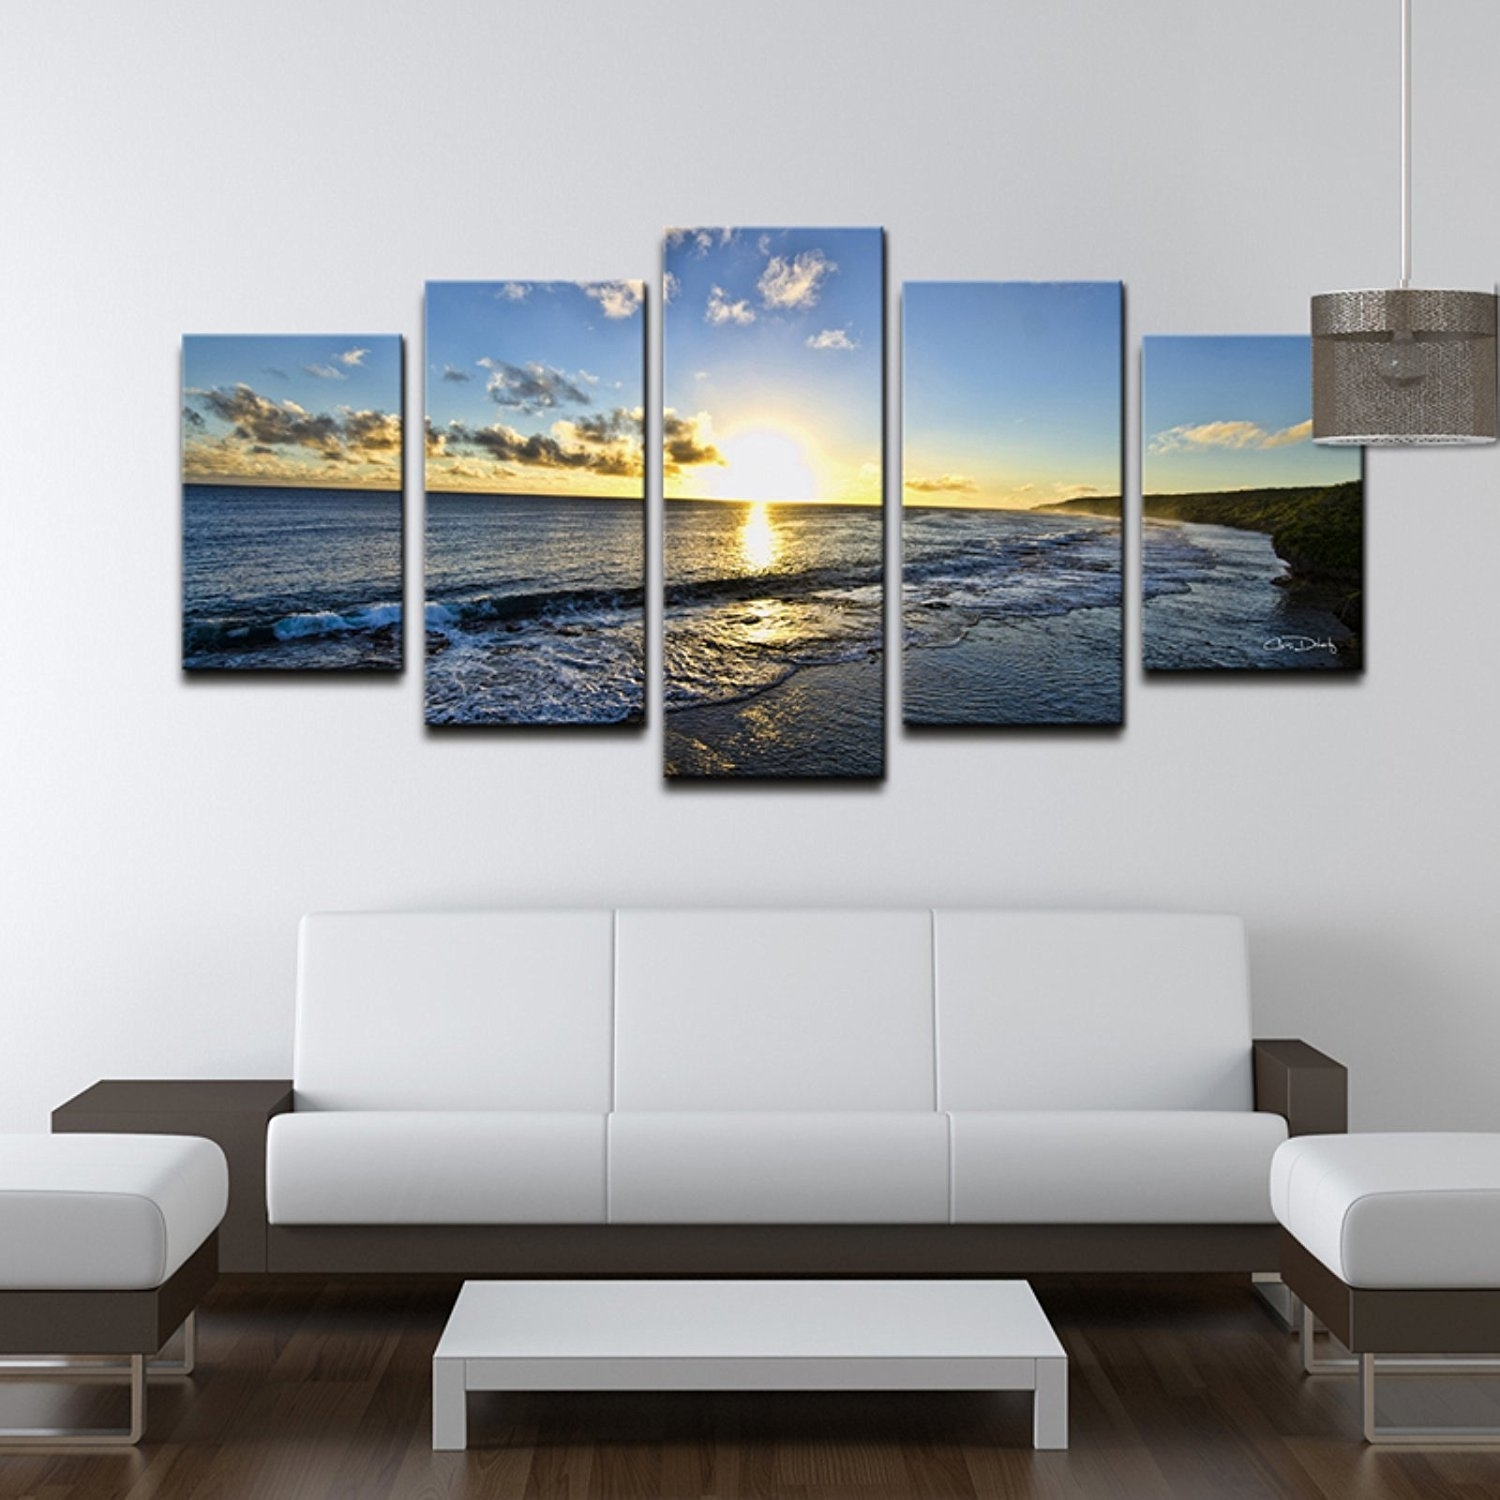 5 Piece Canvas Wall Art Sets Wayfair | Creative Ideas regarding Current Canvas Wall Art At Wayfair